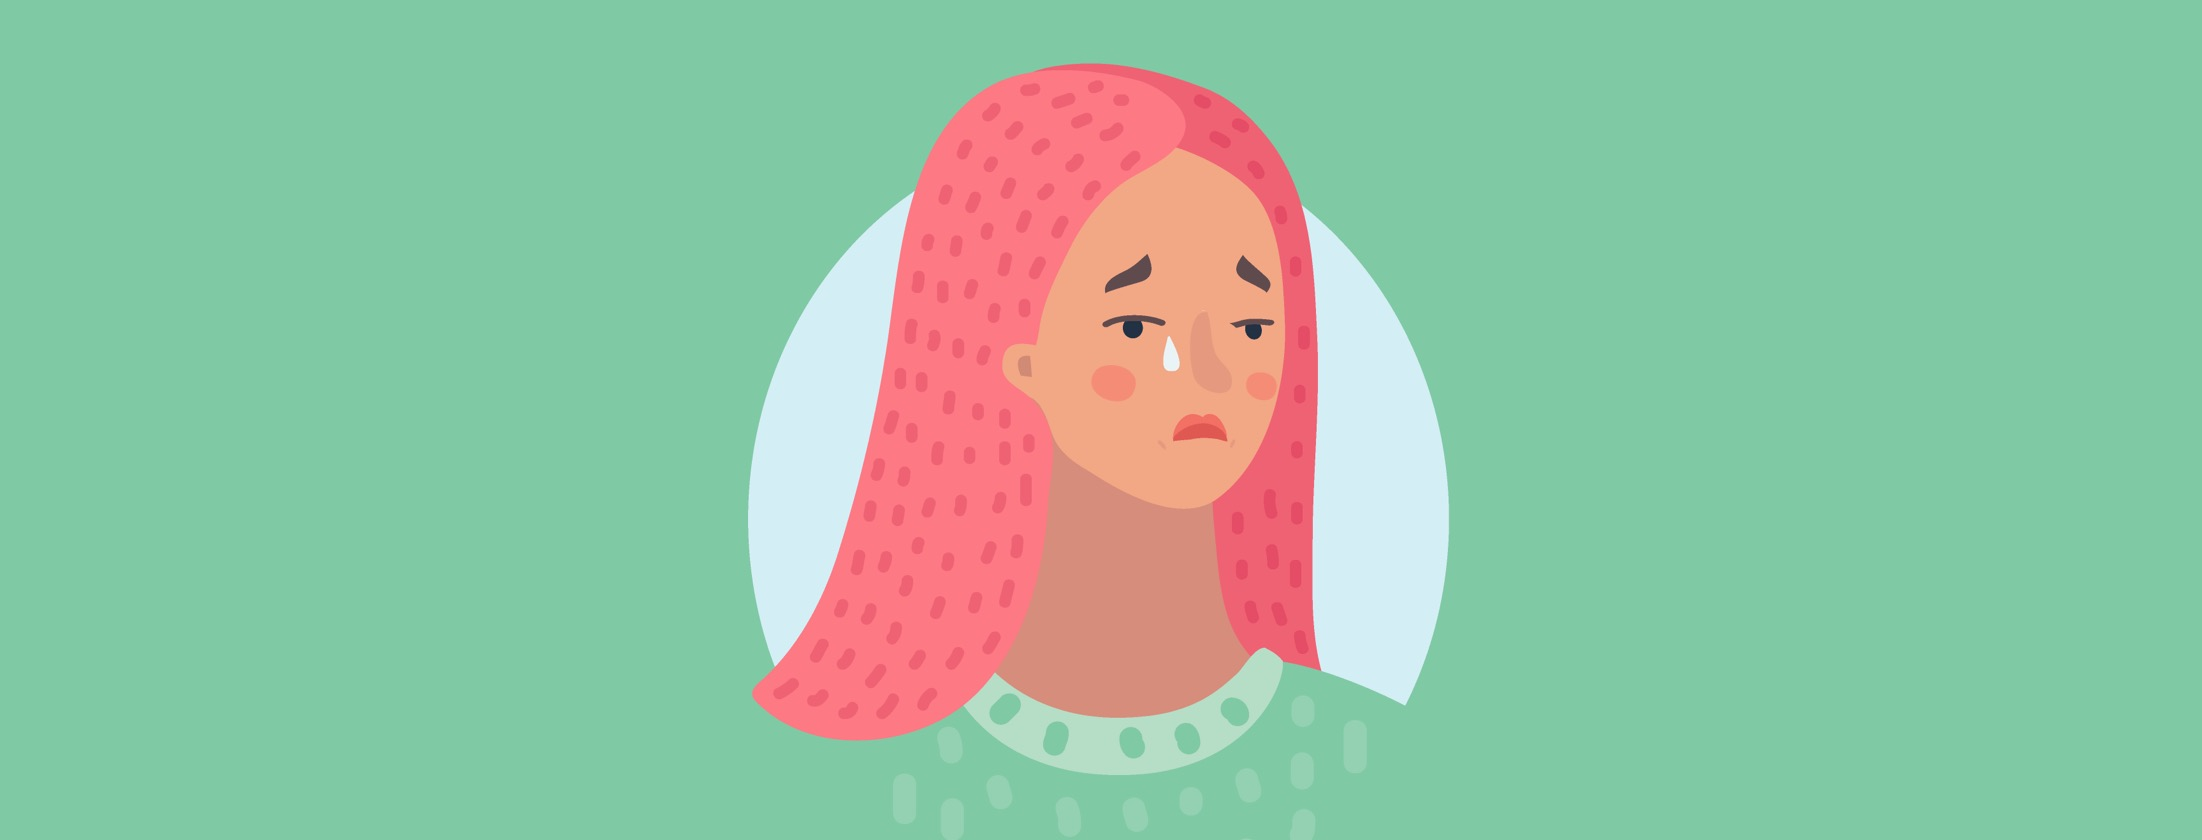 woman with pink hair and green shirt shedding a tear